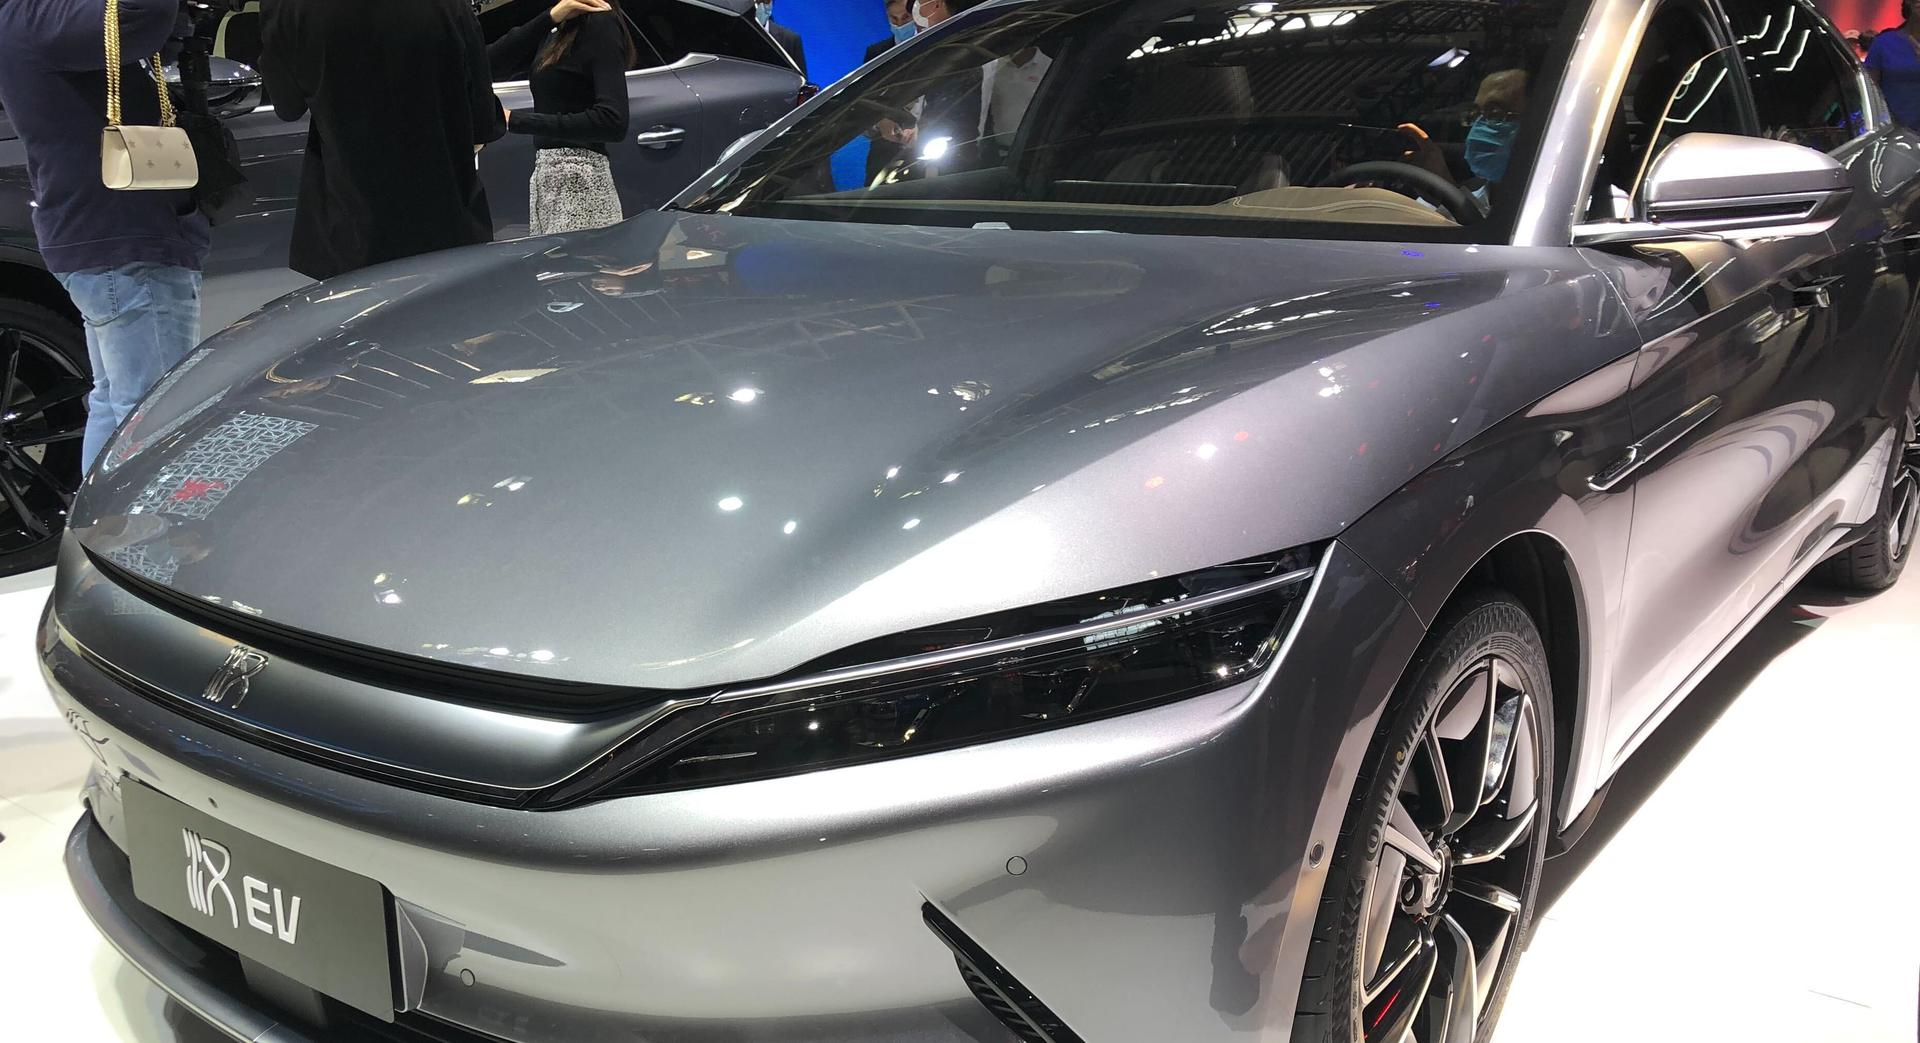 Chinese battery and electric vehicle maker BYD shows off a model of its Han EV series at the 2020 Beijing auto show. Photo:  Evelyn Cheng | CNBC